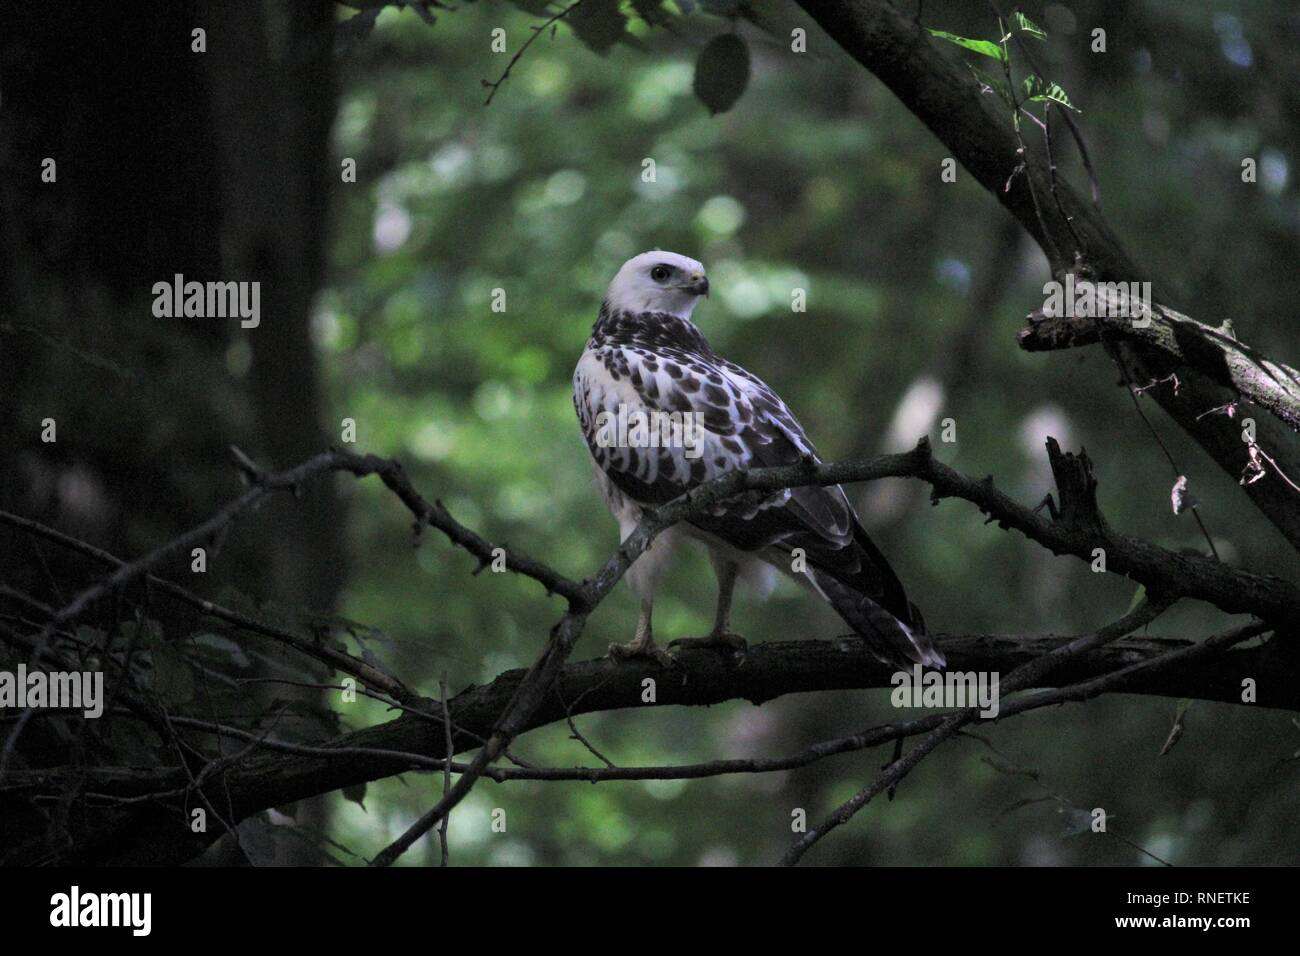 Buzzard (Buteo buteo) in a deciduous forest near Braunschweig-Mascherode, Germany - Stock Image